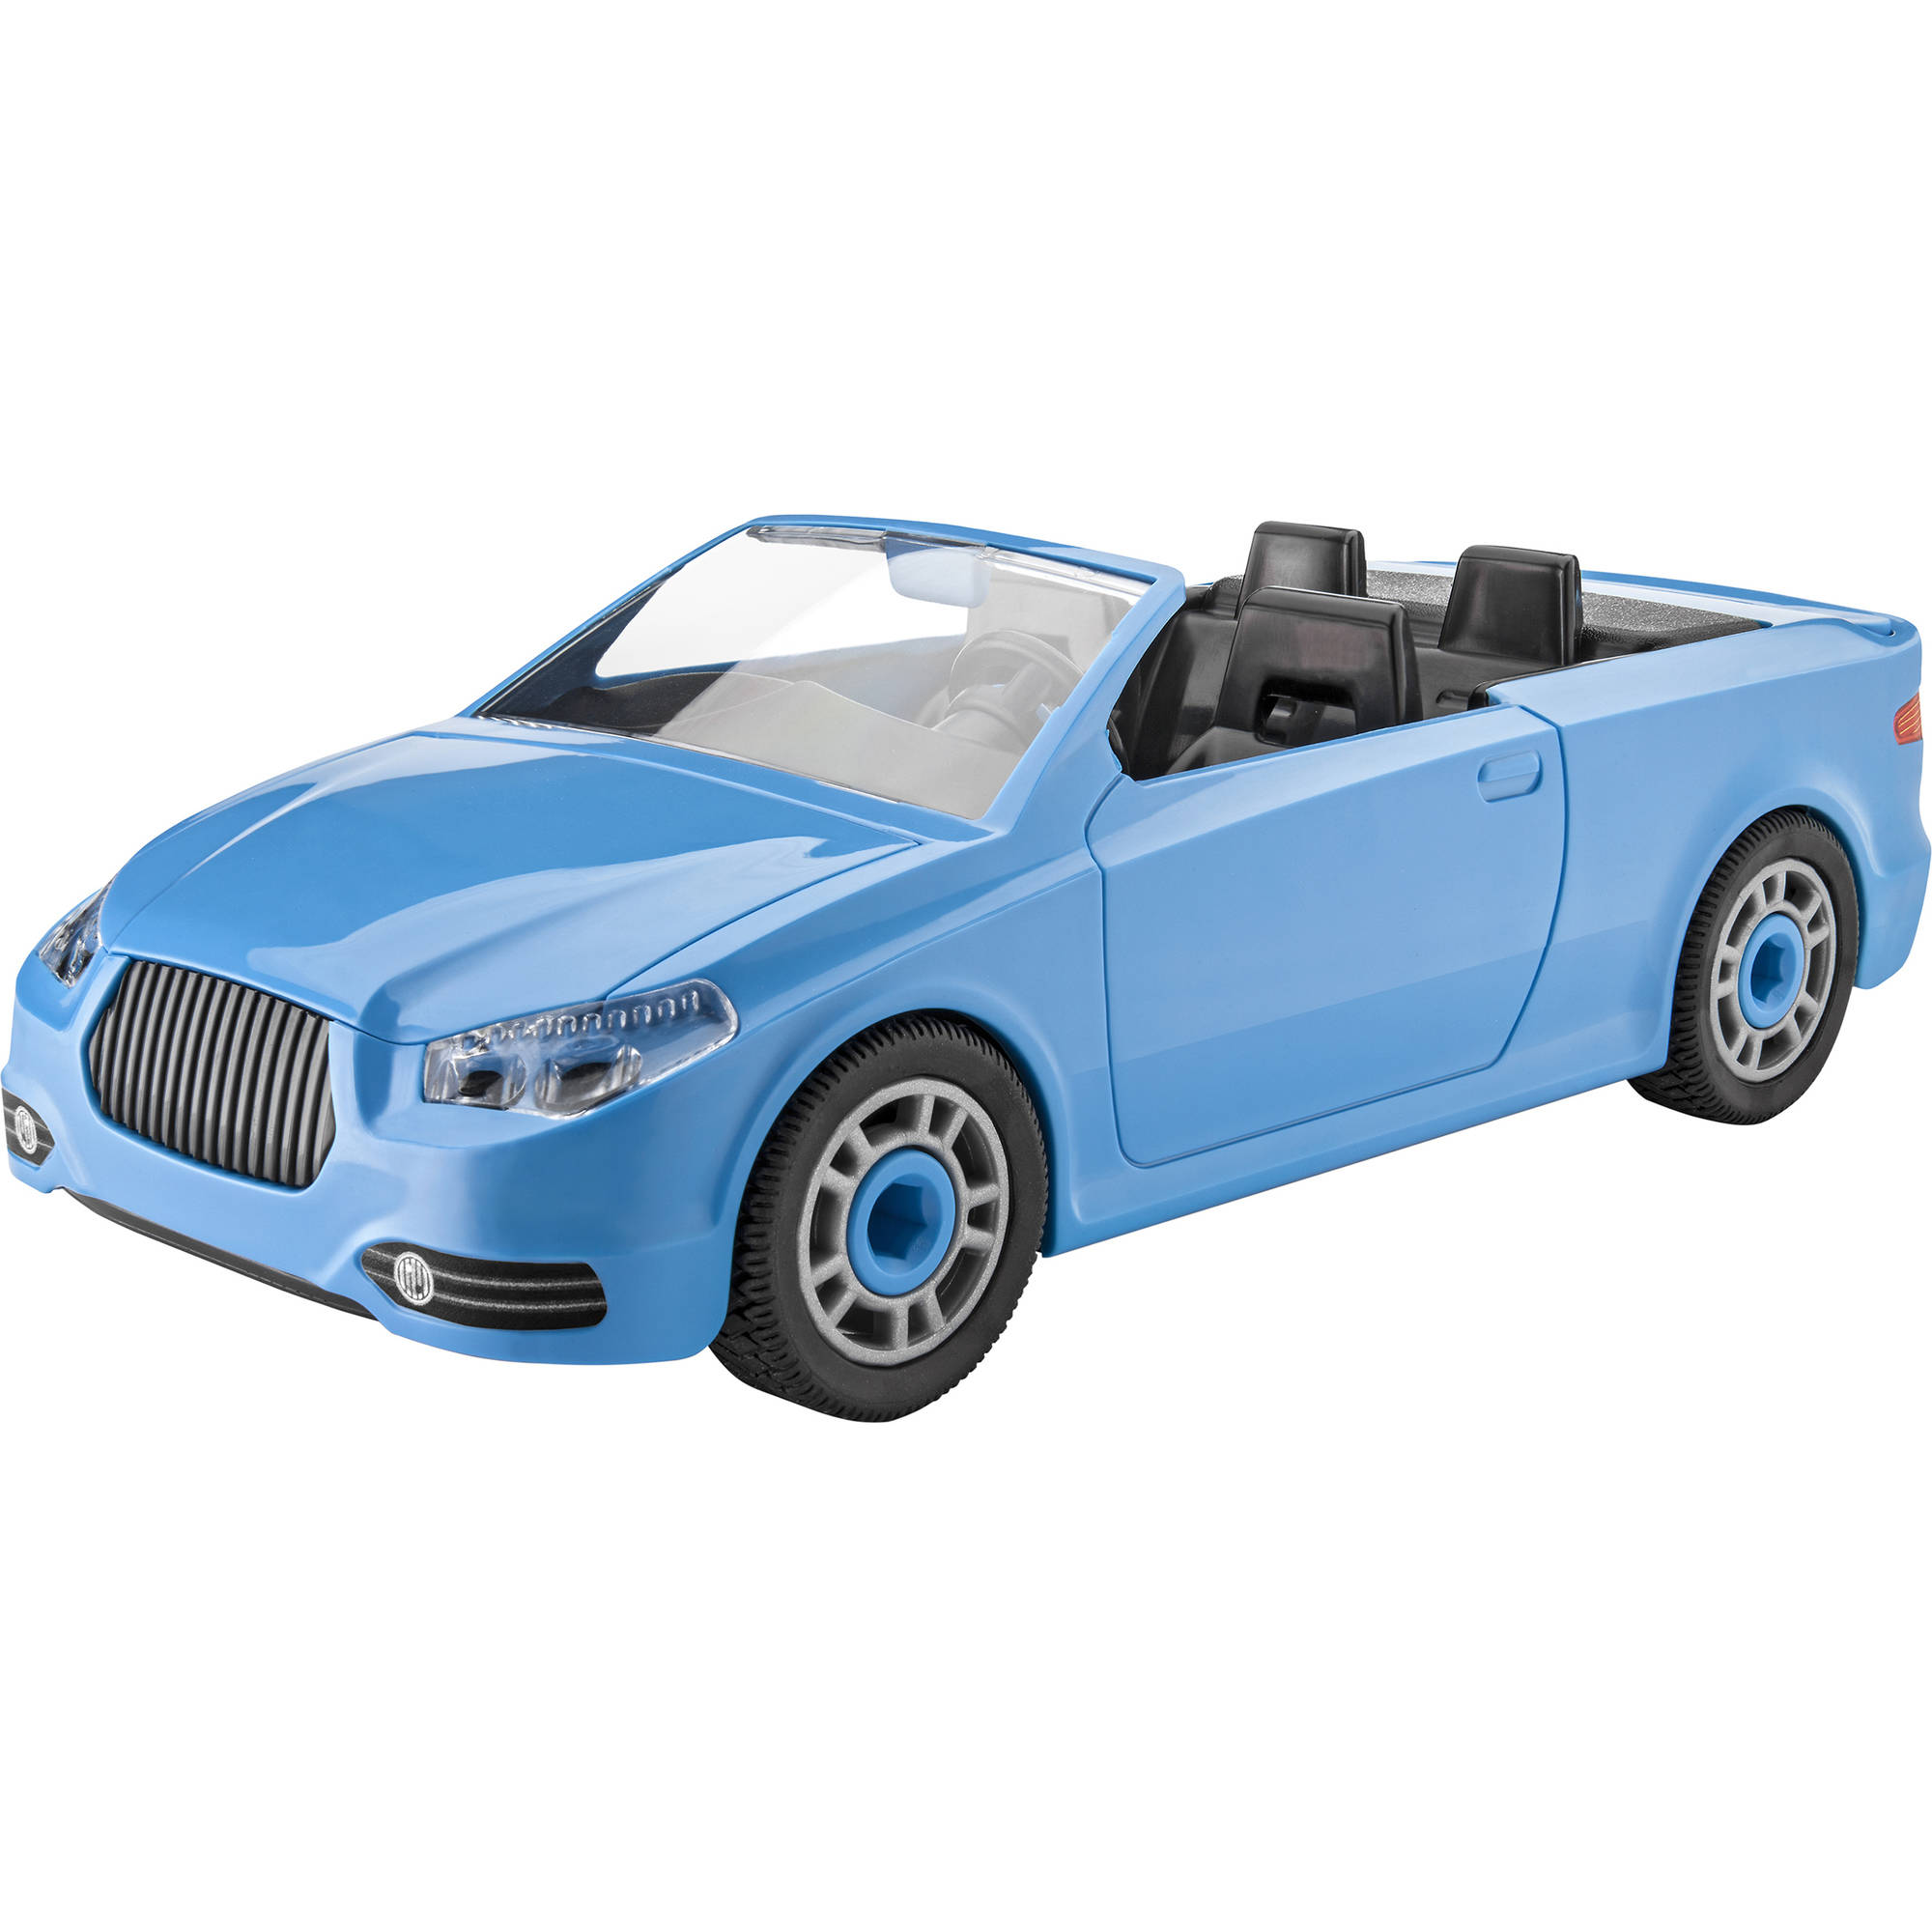 Revell Junior Kit Roadster Convertible Plastic Model Kit by Revell